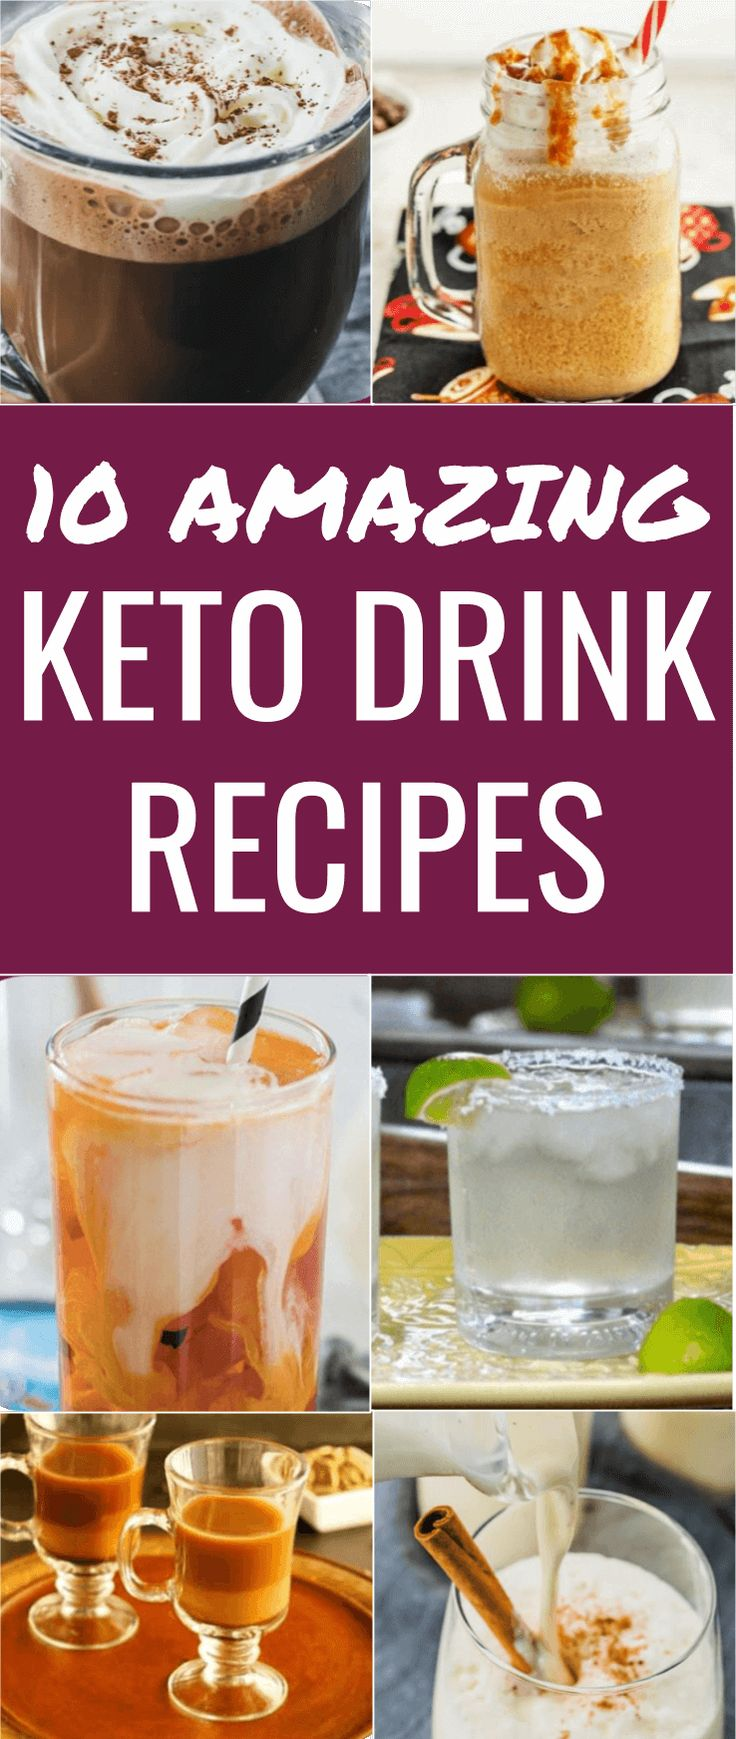 Here are the 10 best recipes for keto drinks! These are